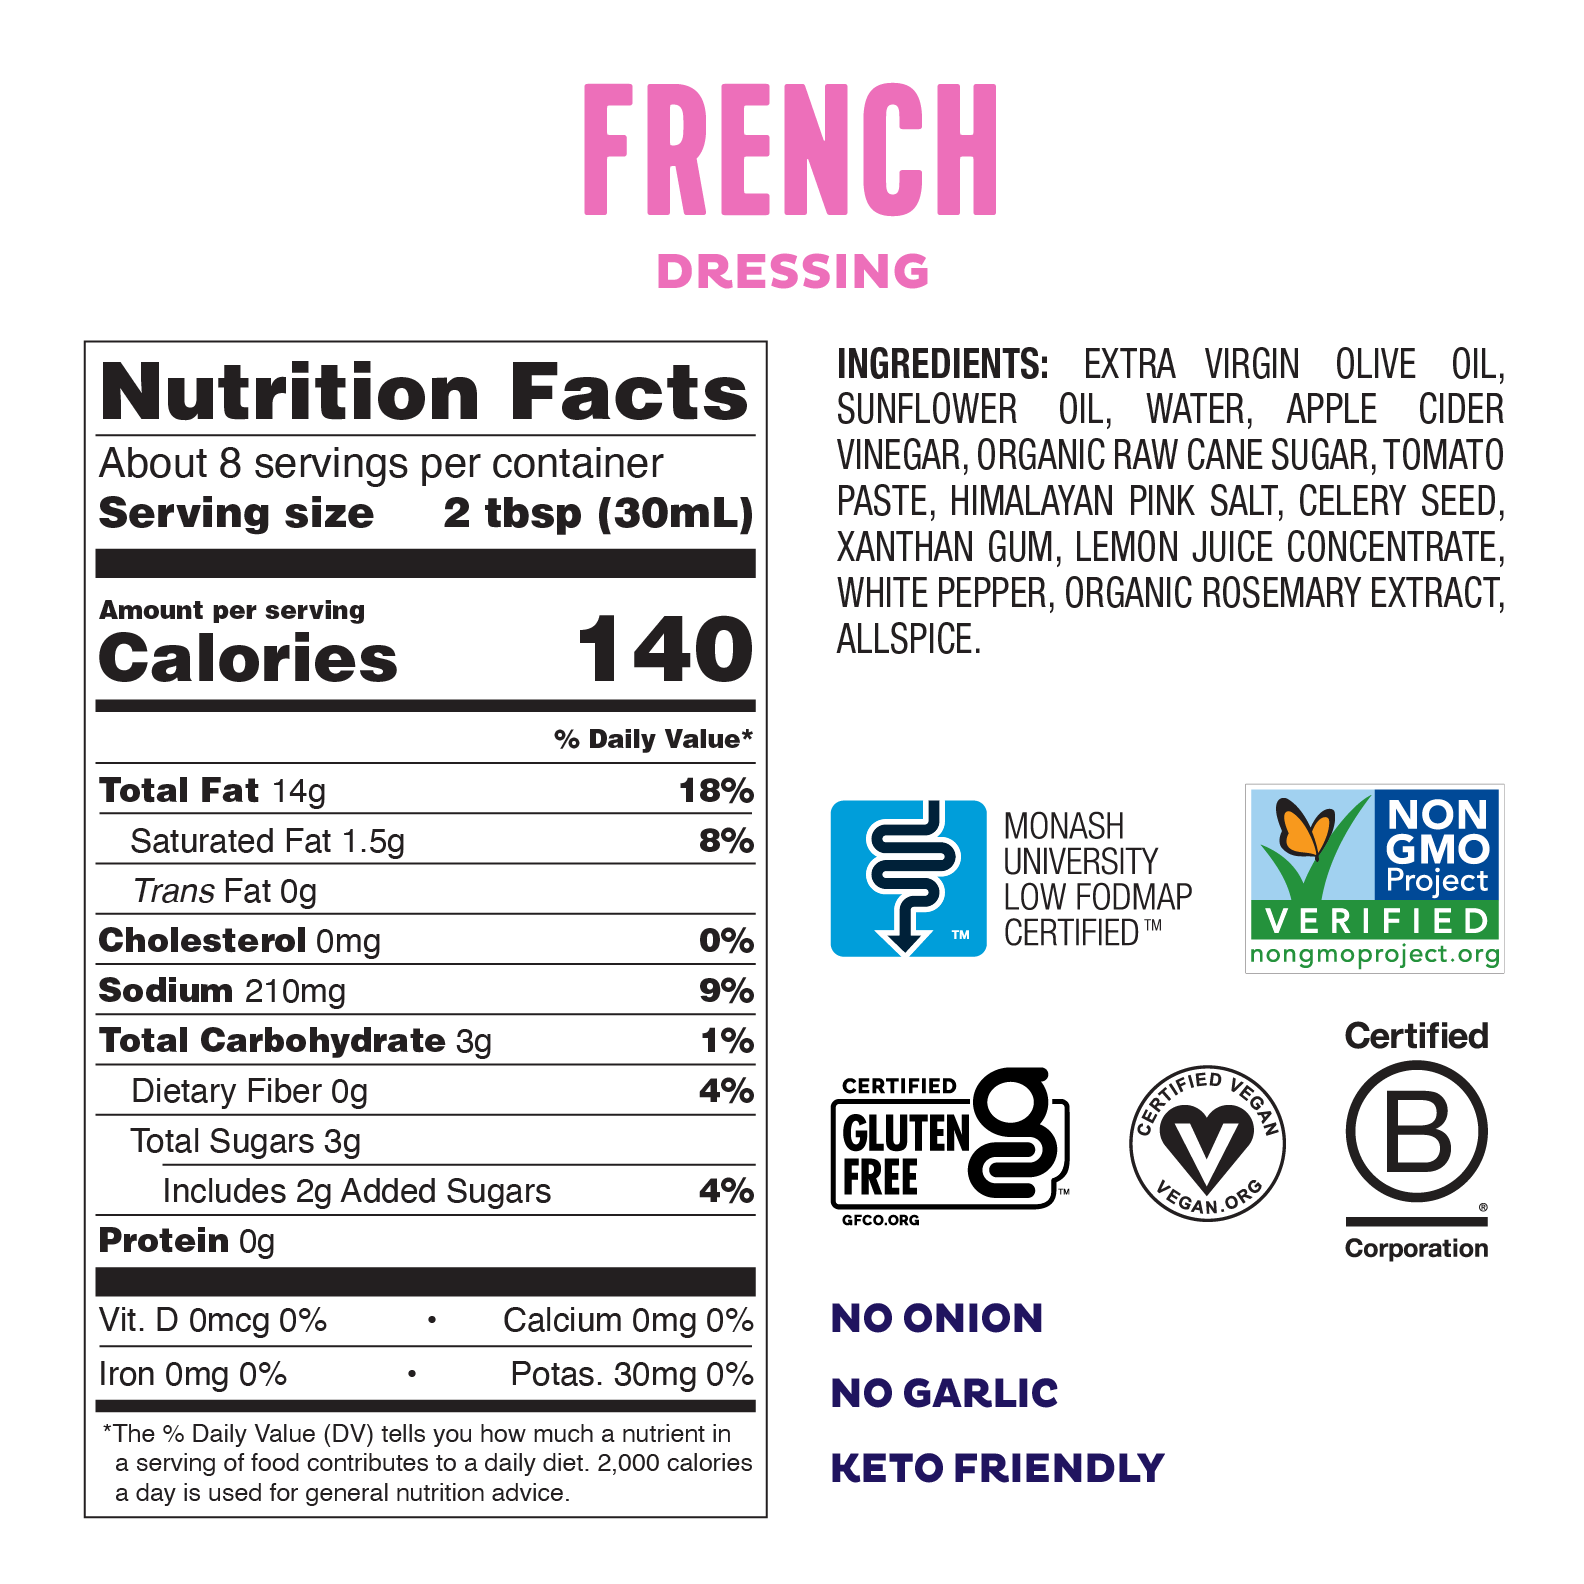 fody-french-dressing-ingredients